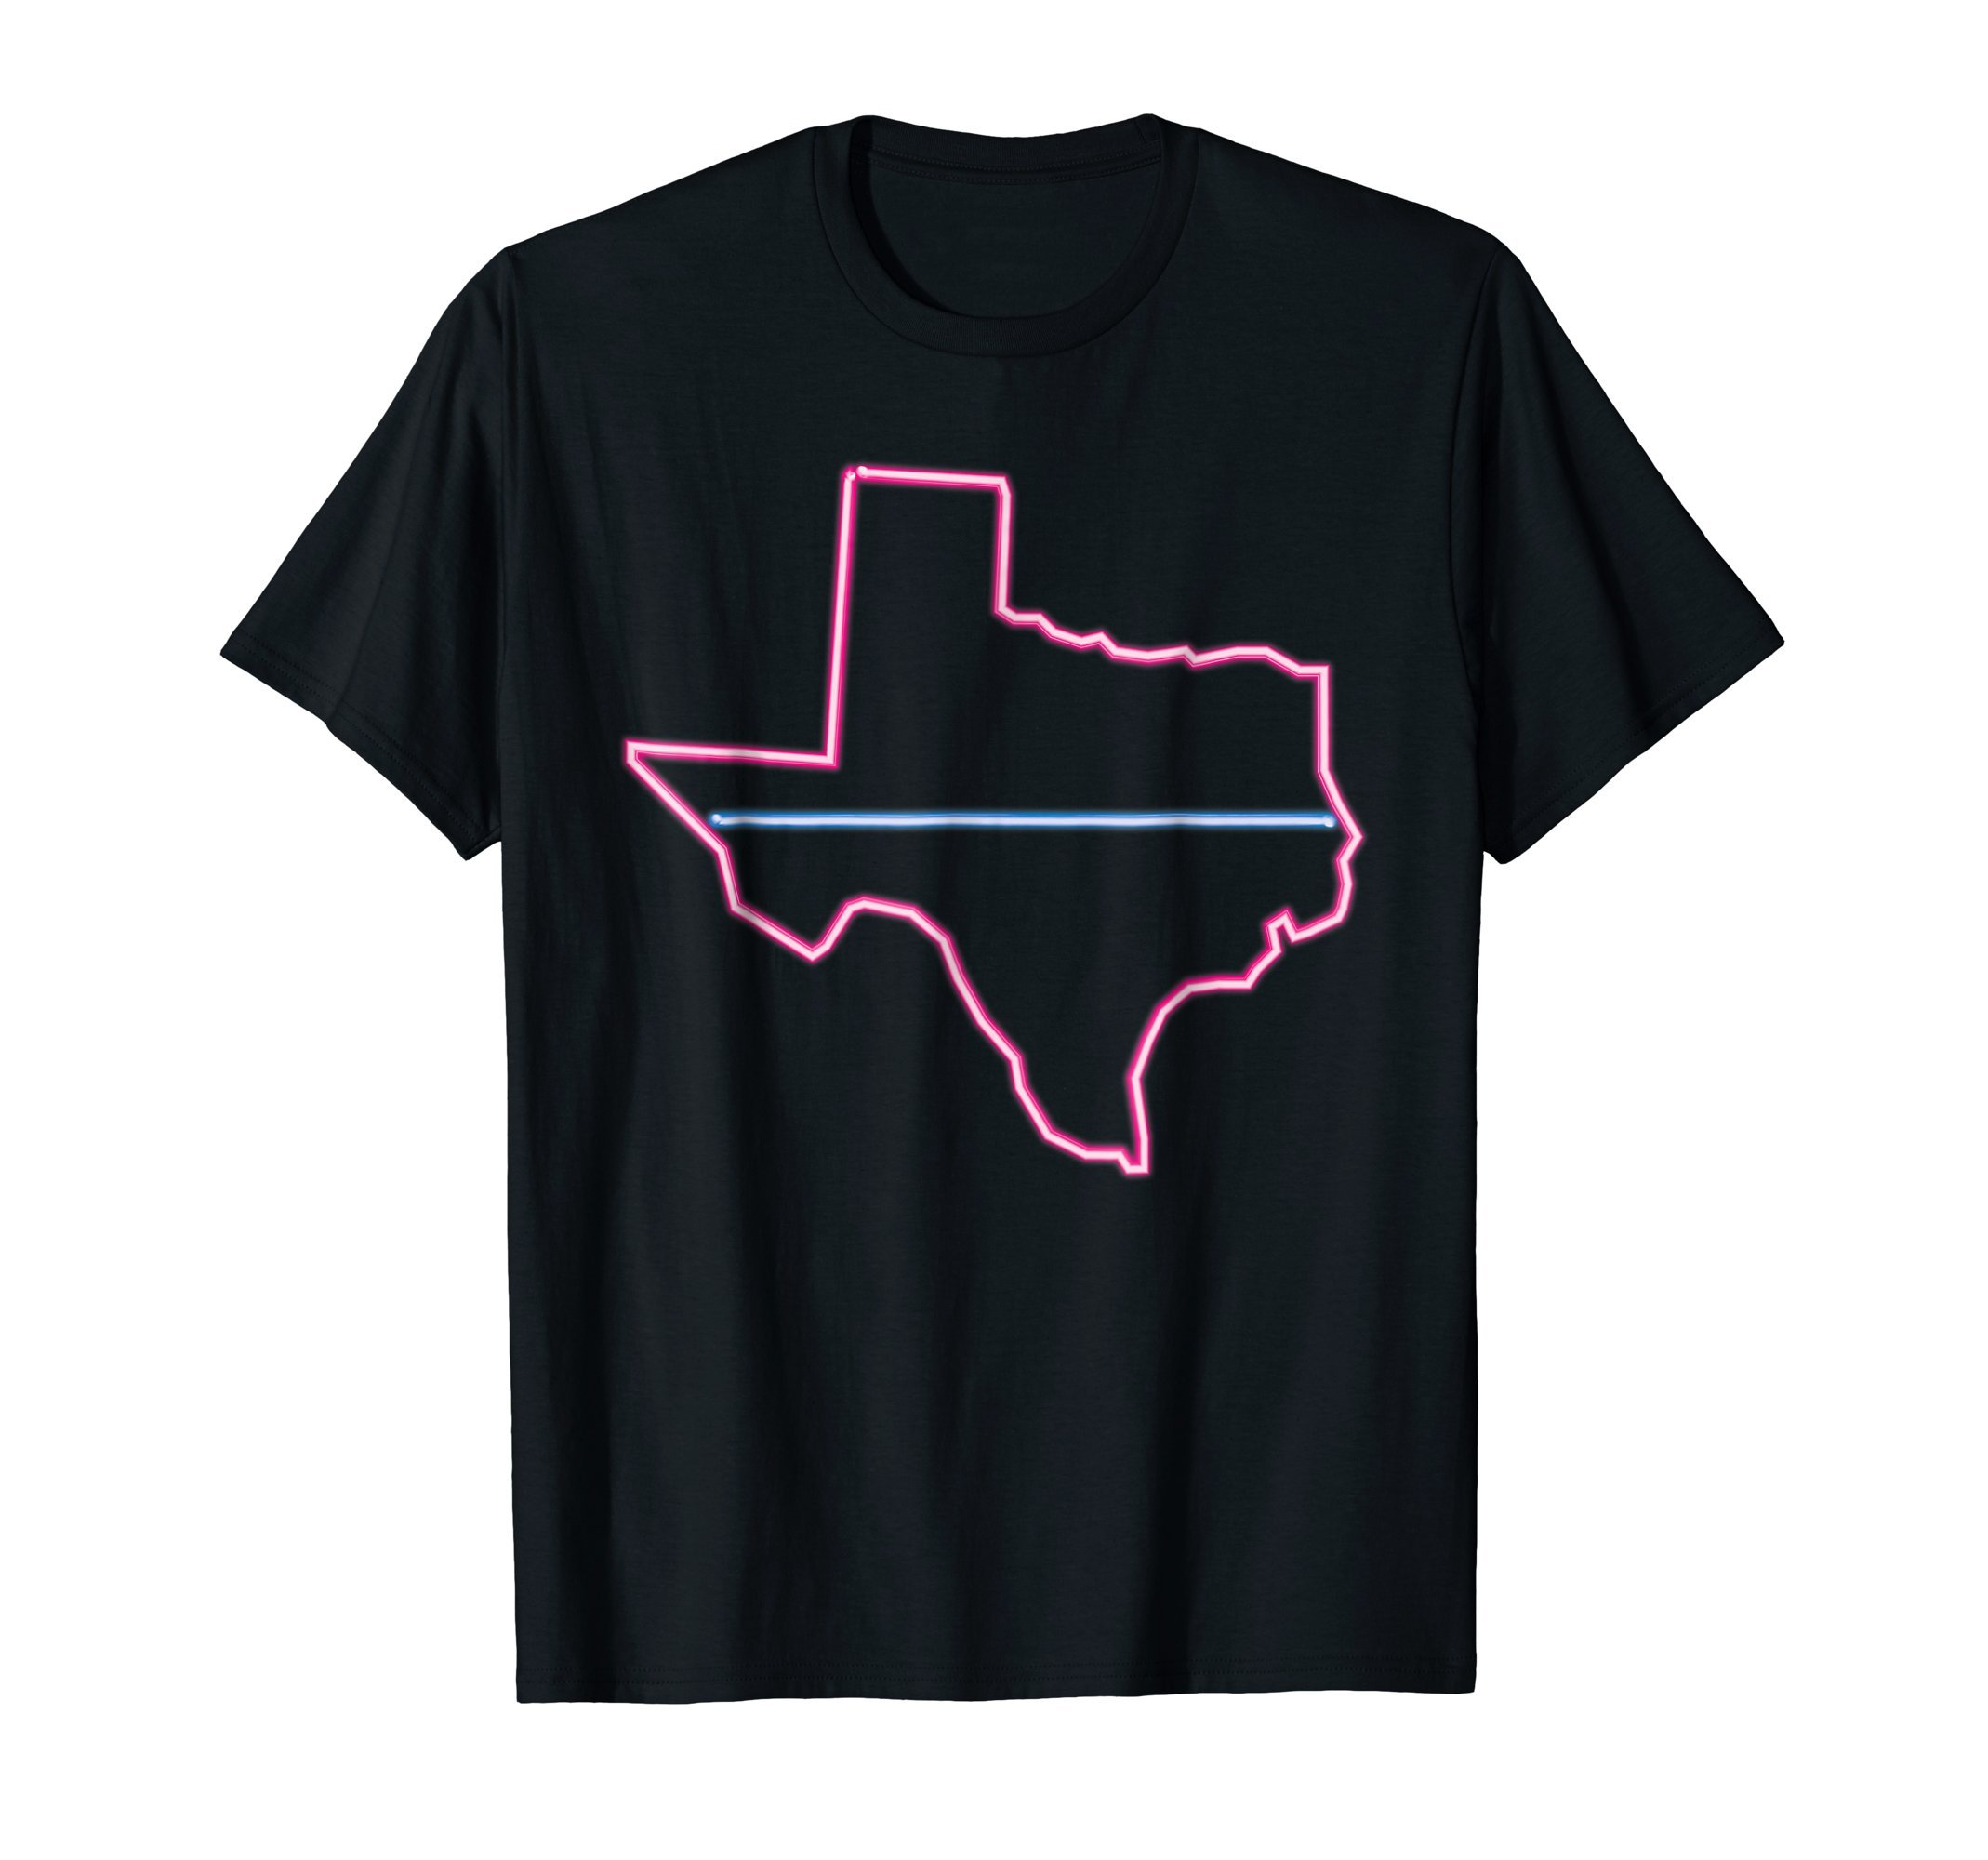 State of Texas Shirt Thin Blue Line Retro Neon Light Sign